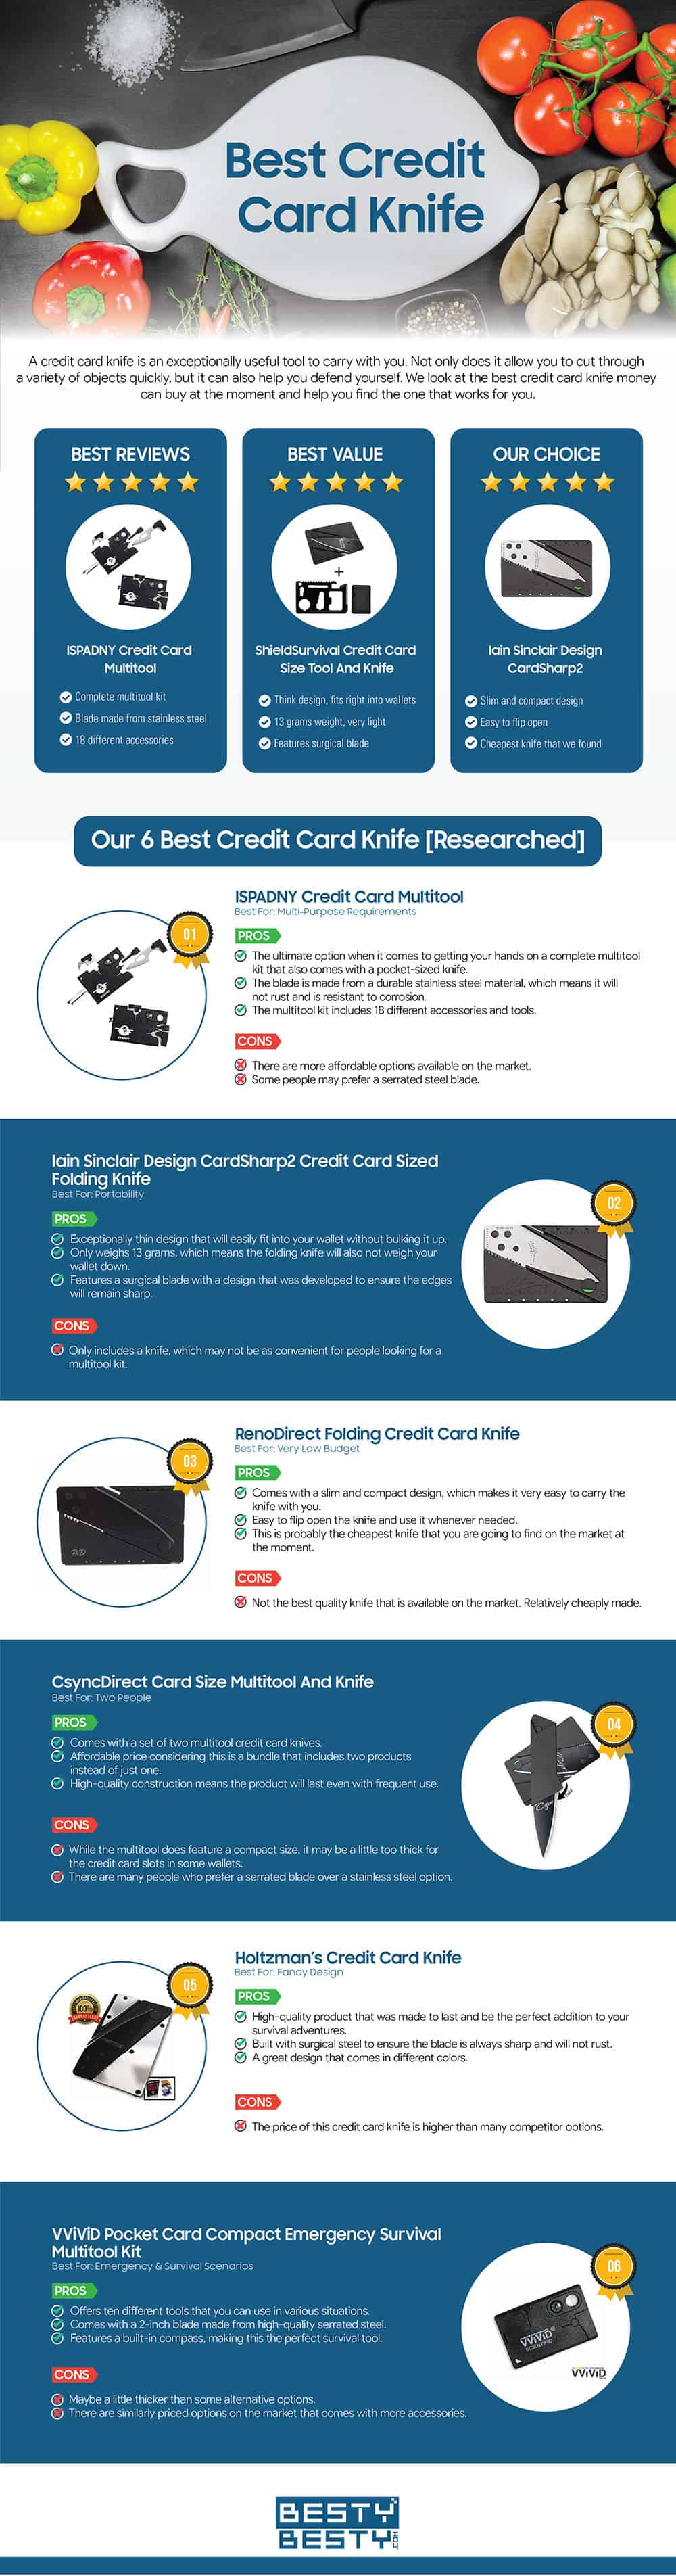 Best Credit Card Knife infographic by bestybesty.com